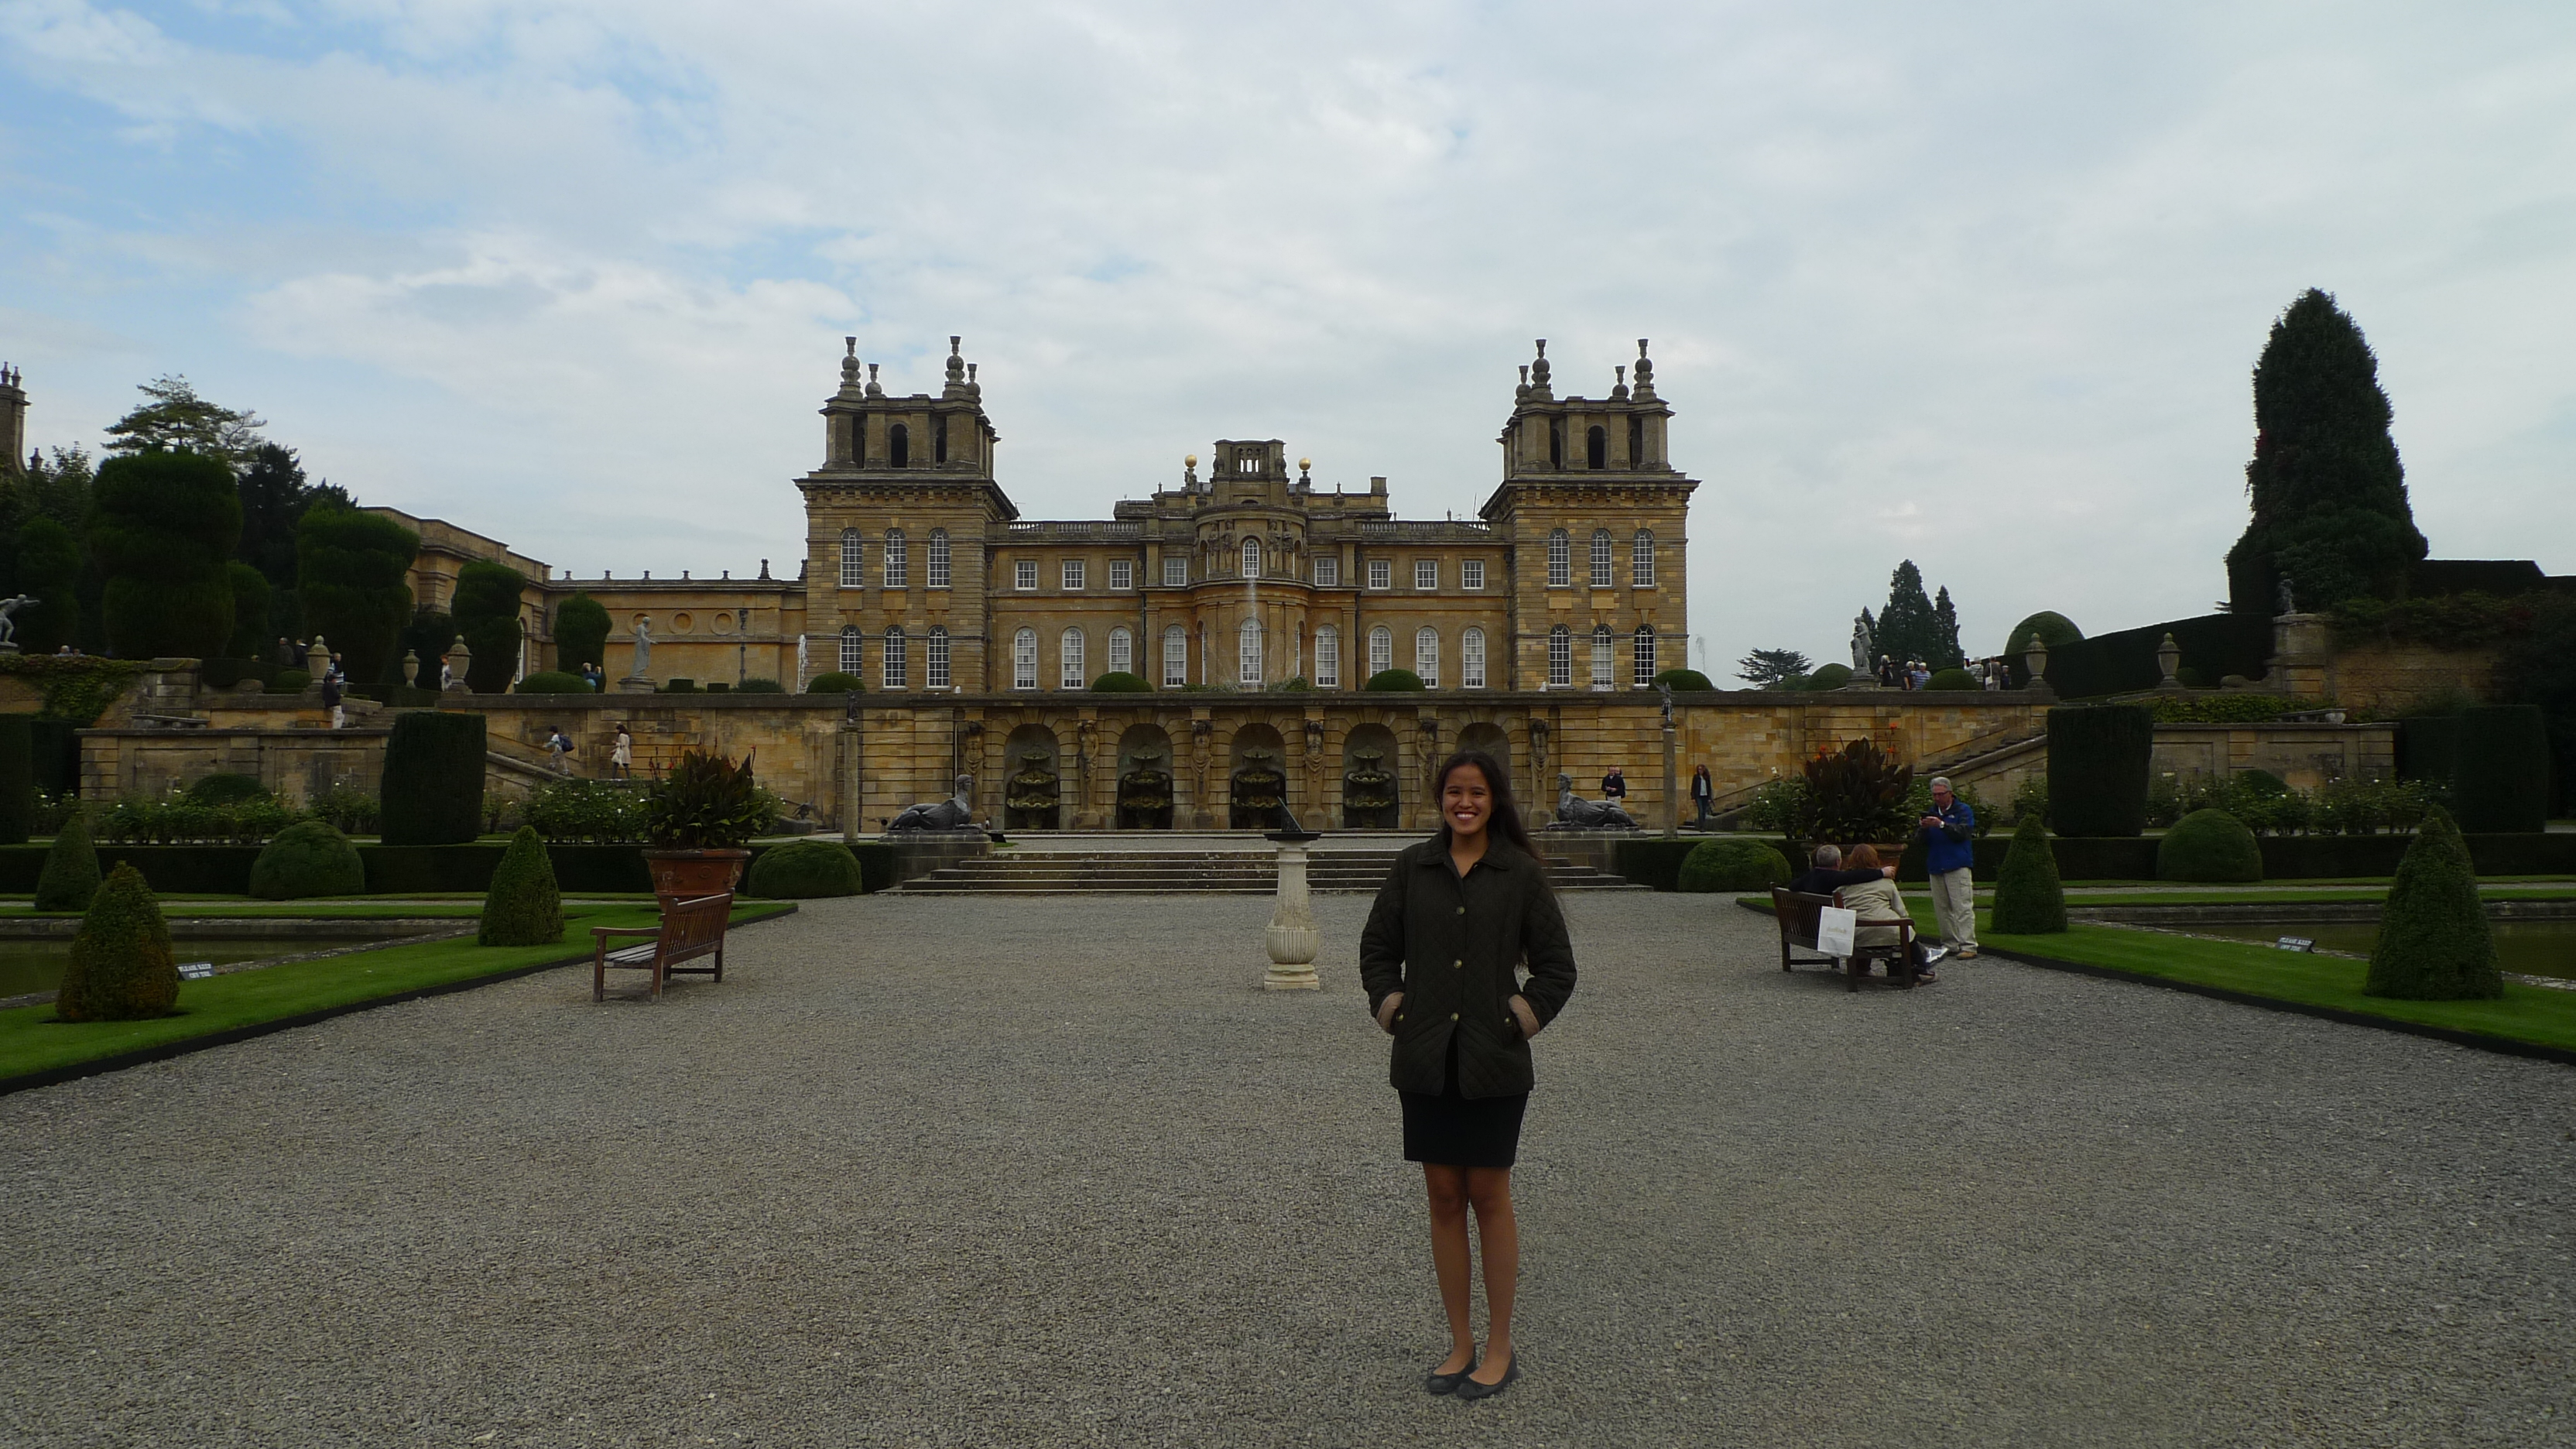 In Blenheim Palace (Oxfordshire)